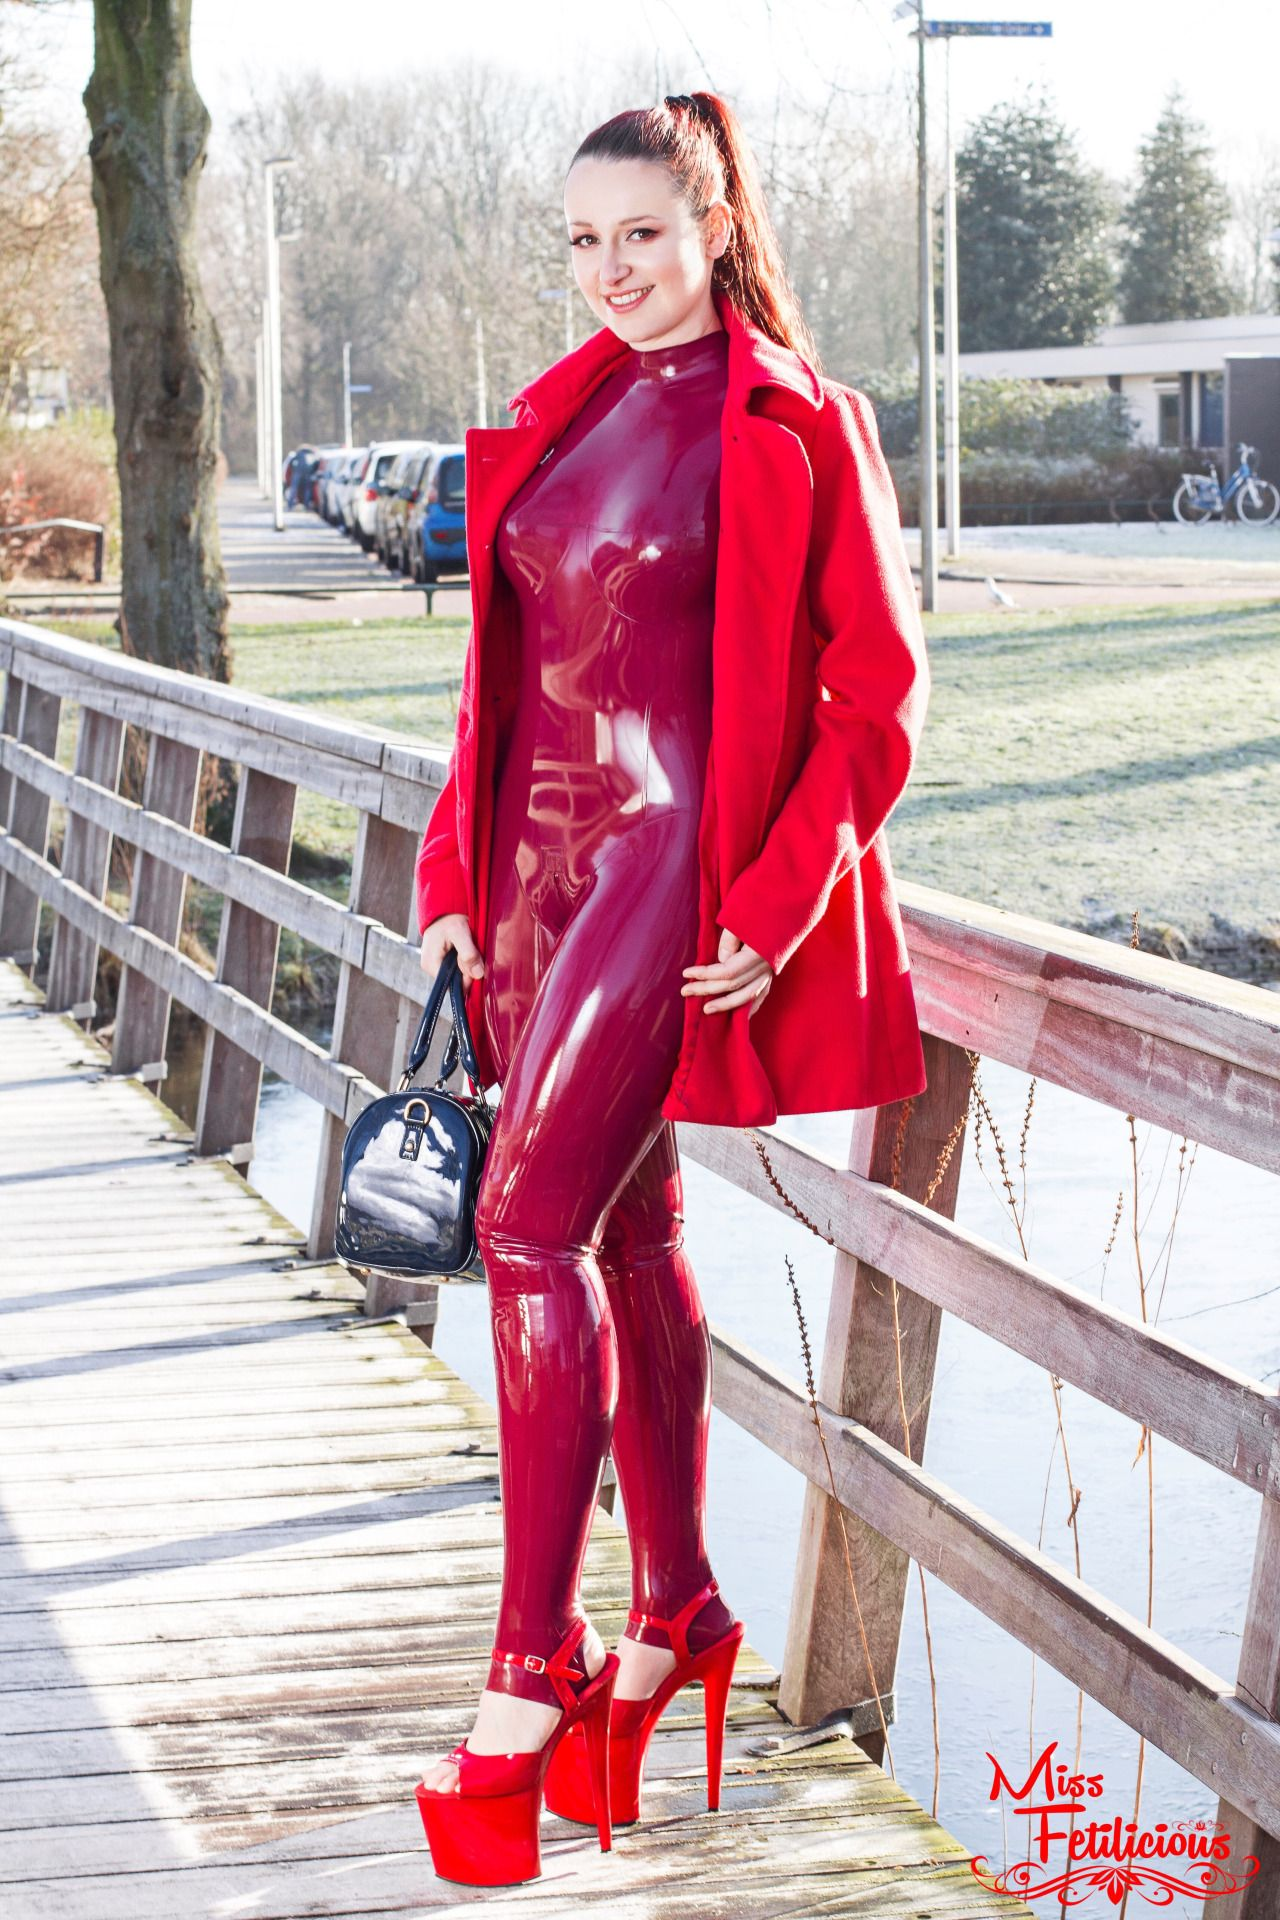 let s take a nice sunday walk with me latex latex pinterest latex nice and catsuit. Black Bedroom Furniture Sets. Home Design Ideas